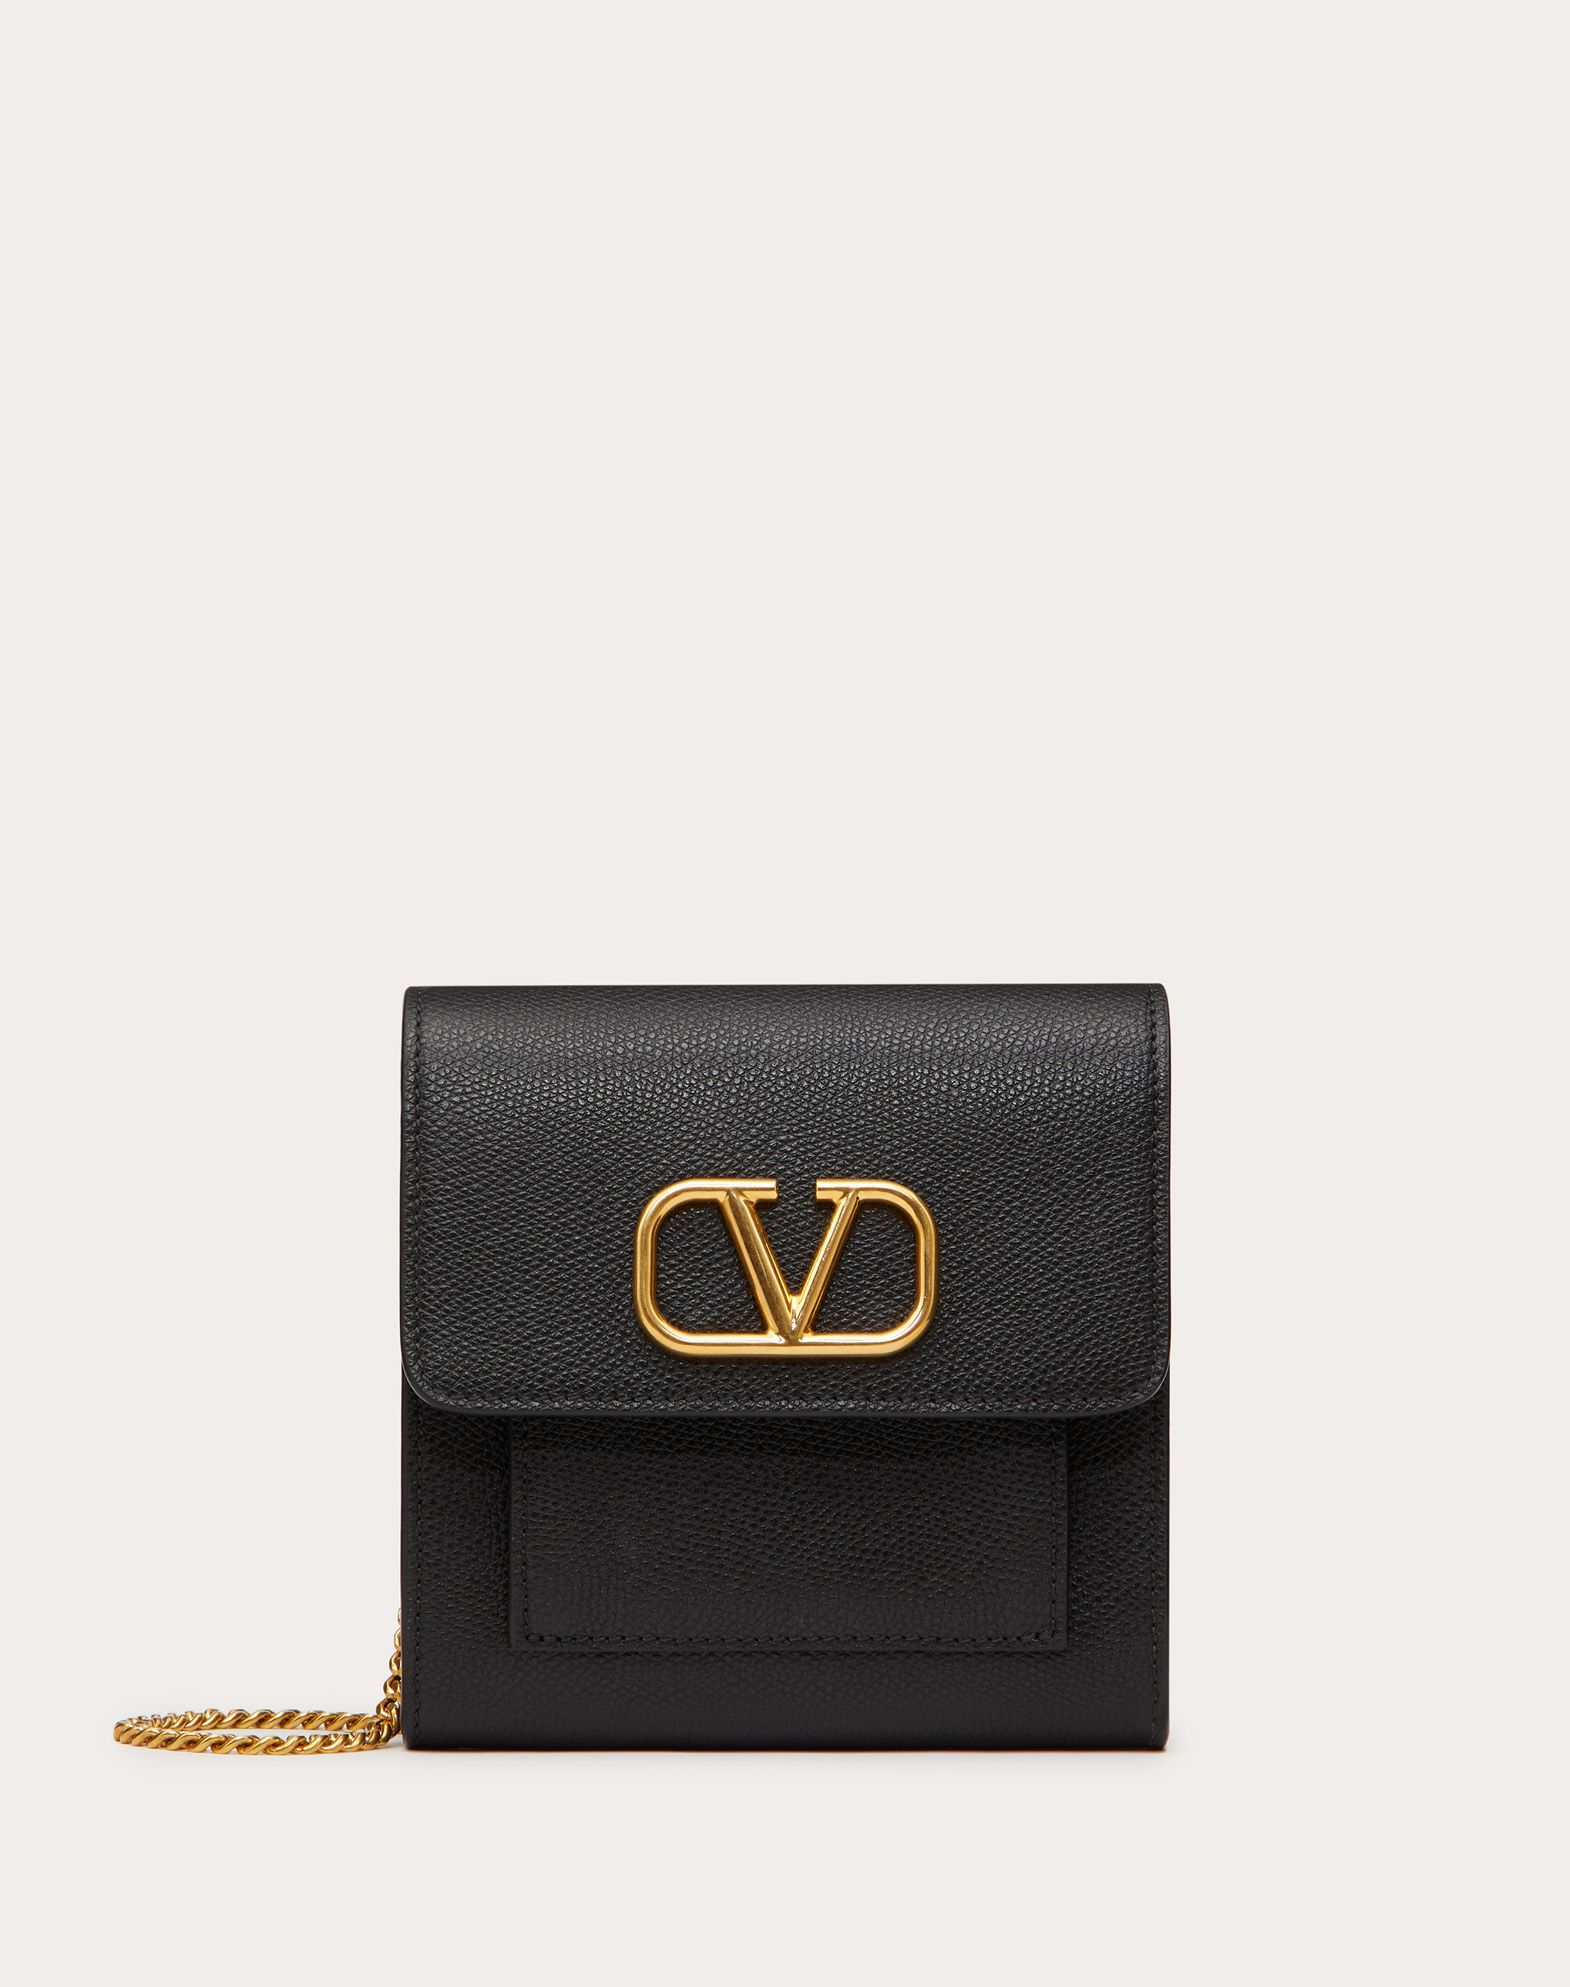 VLOGO GRAINY CALFSKIN POUCH WITH CHAIN STRAP